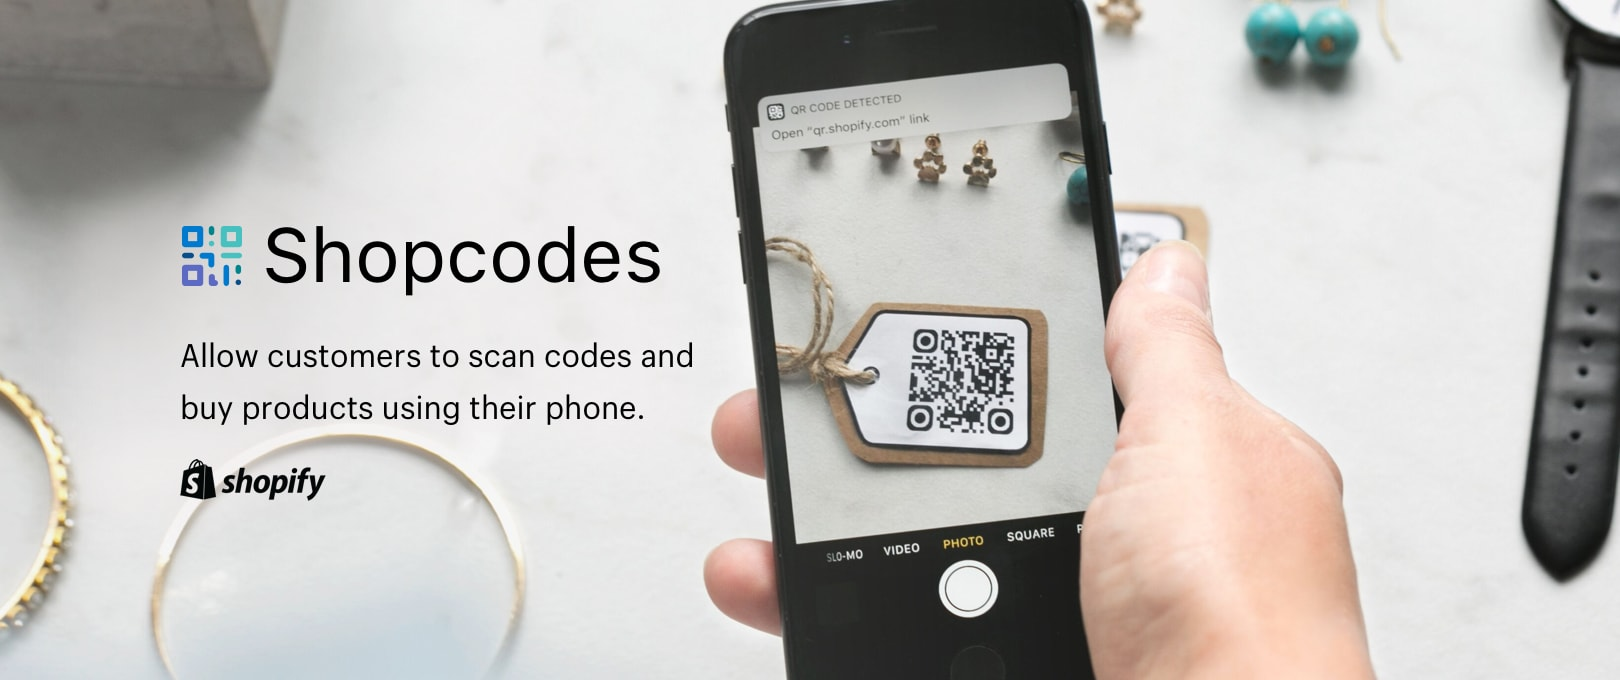 Introducing Shopcodes: QR Codes That Make Mobile Shopping a Breeze